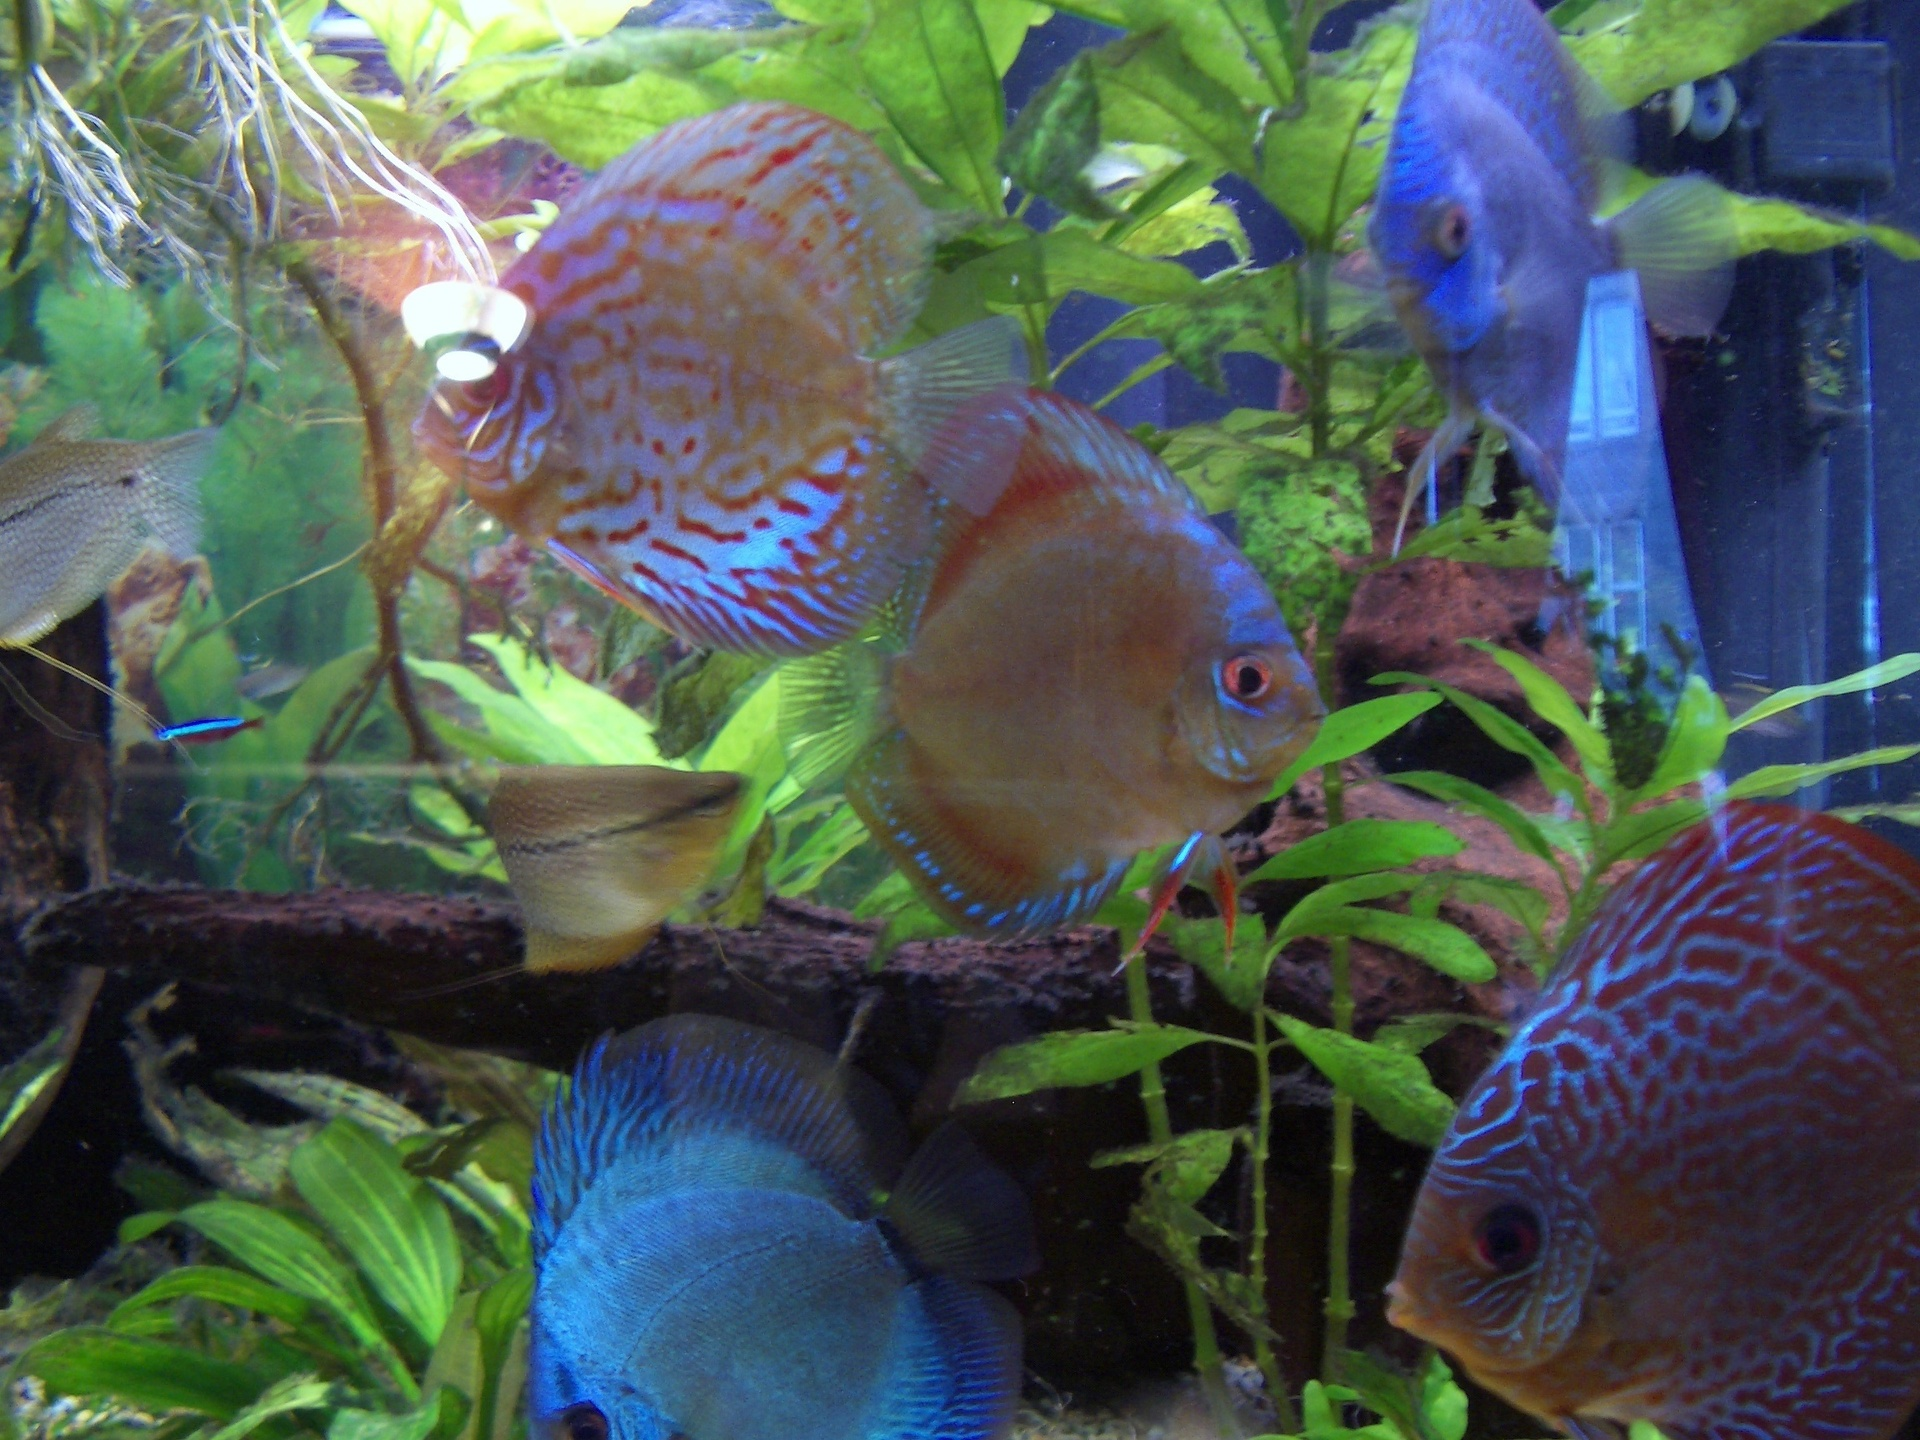 Sea life discus fish